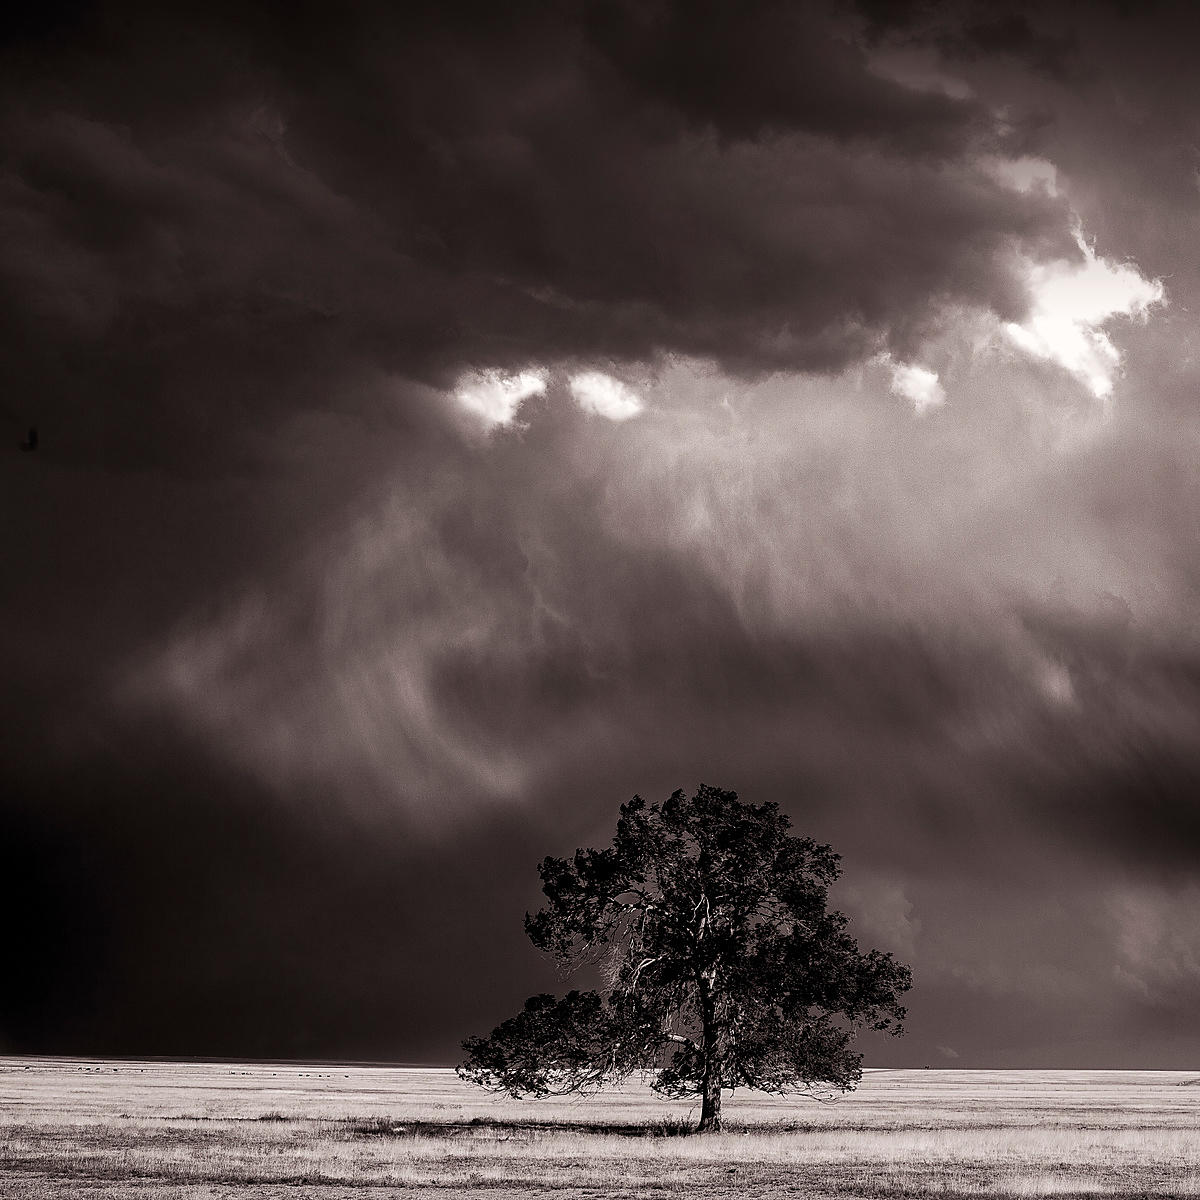 Prairie tree and rainstorm | New Mexico | June 2014